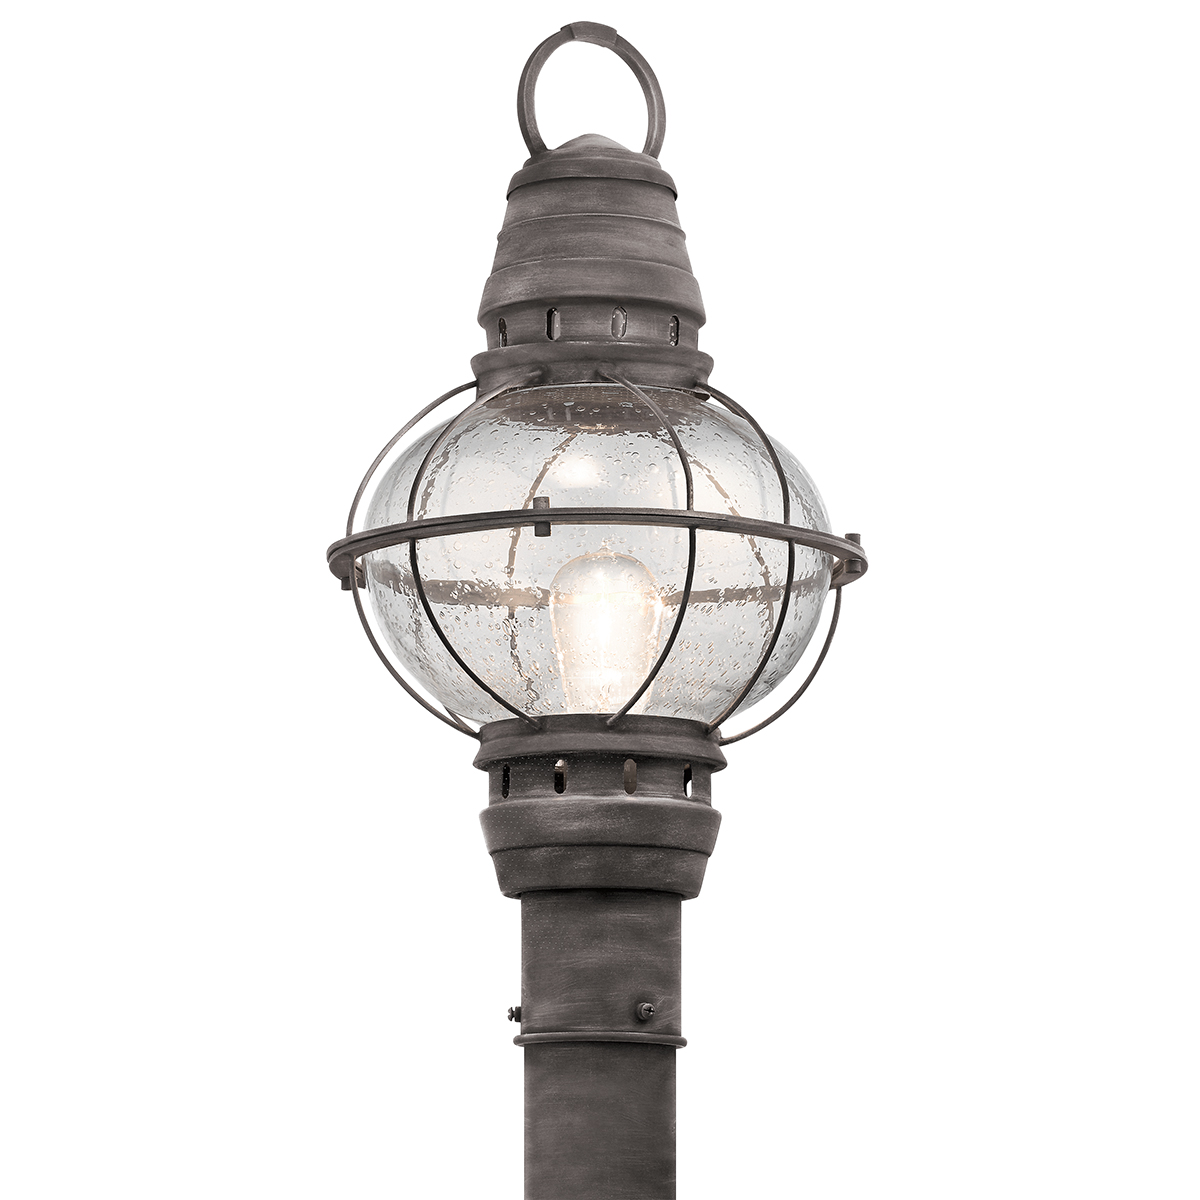 Kichler Lighting  49631WZC  Bridge Point 1 Light Outdoor Post Mount Lantern  in Weathered ZincKichler Lighting Outdoor Post Lights. Kichler Lighting Outdoor Sconce. Home Design Ideas